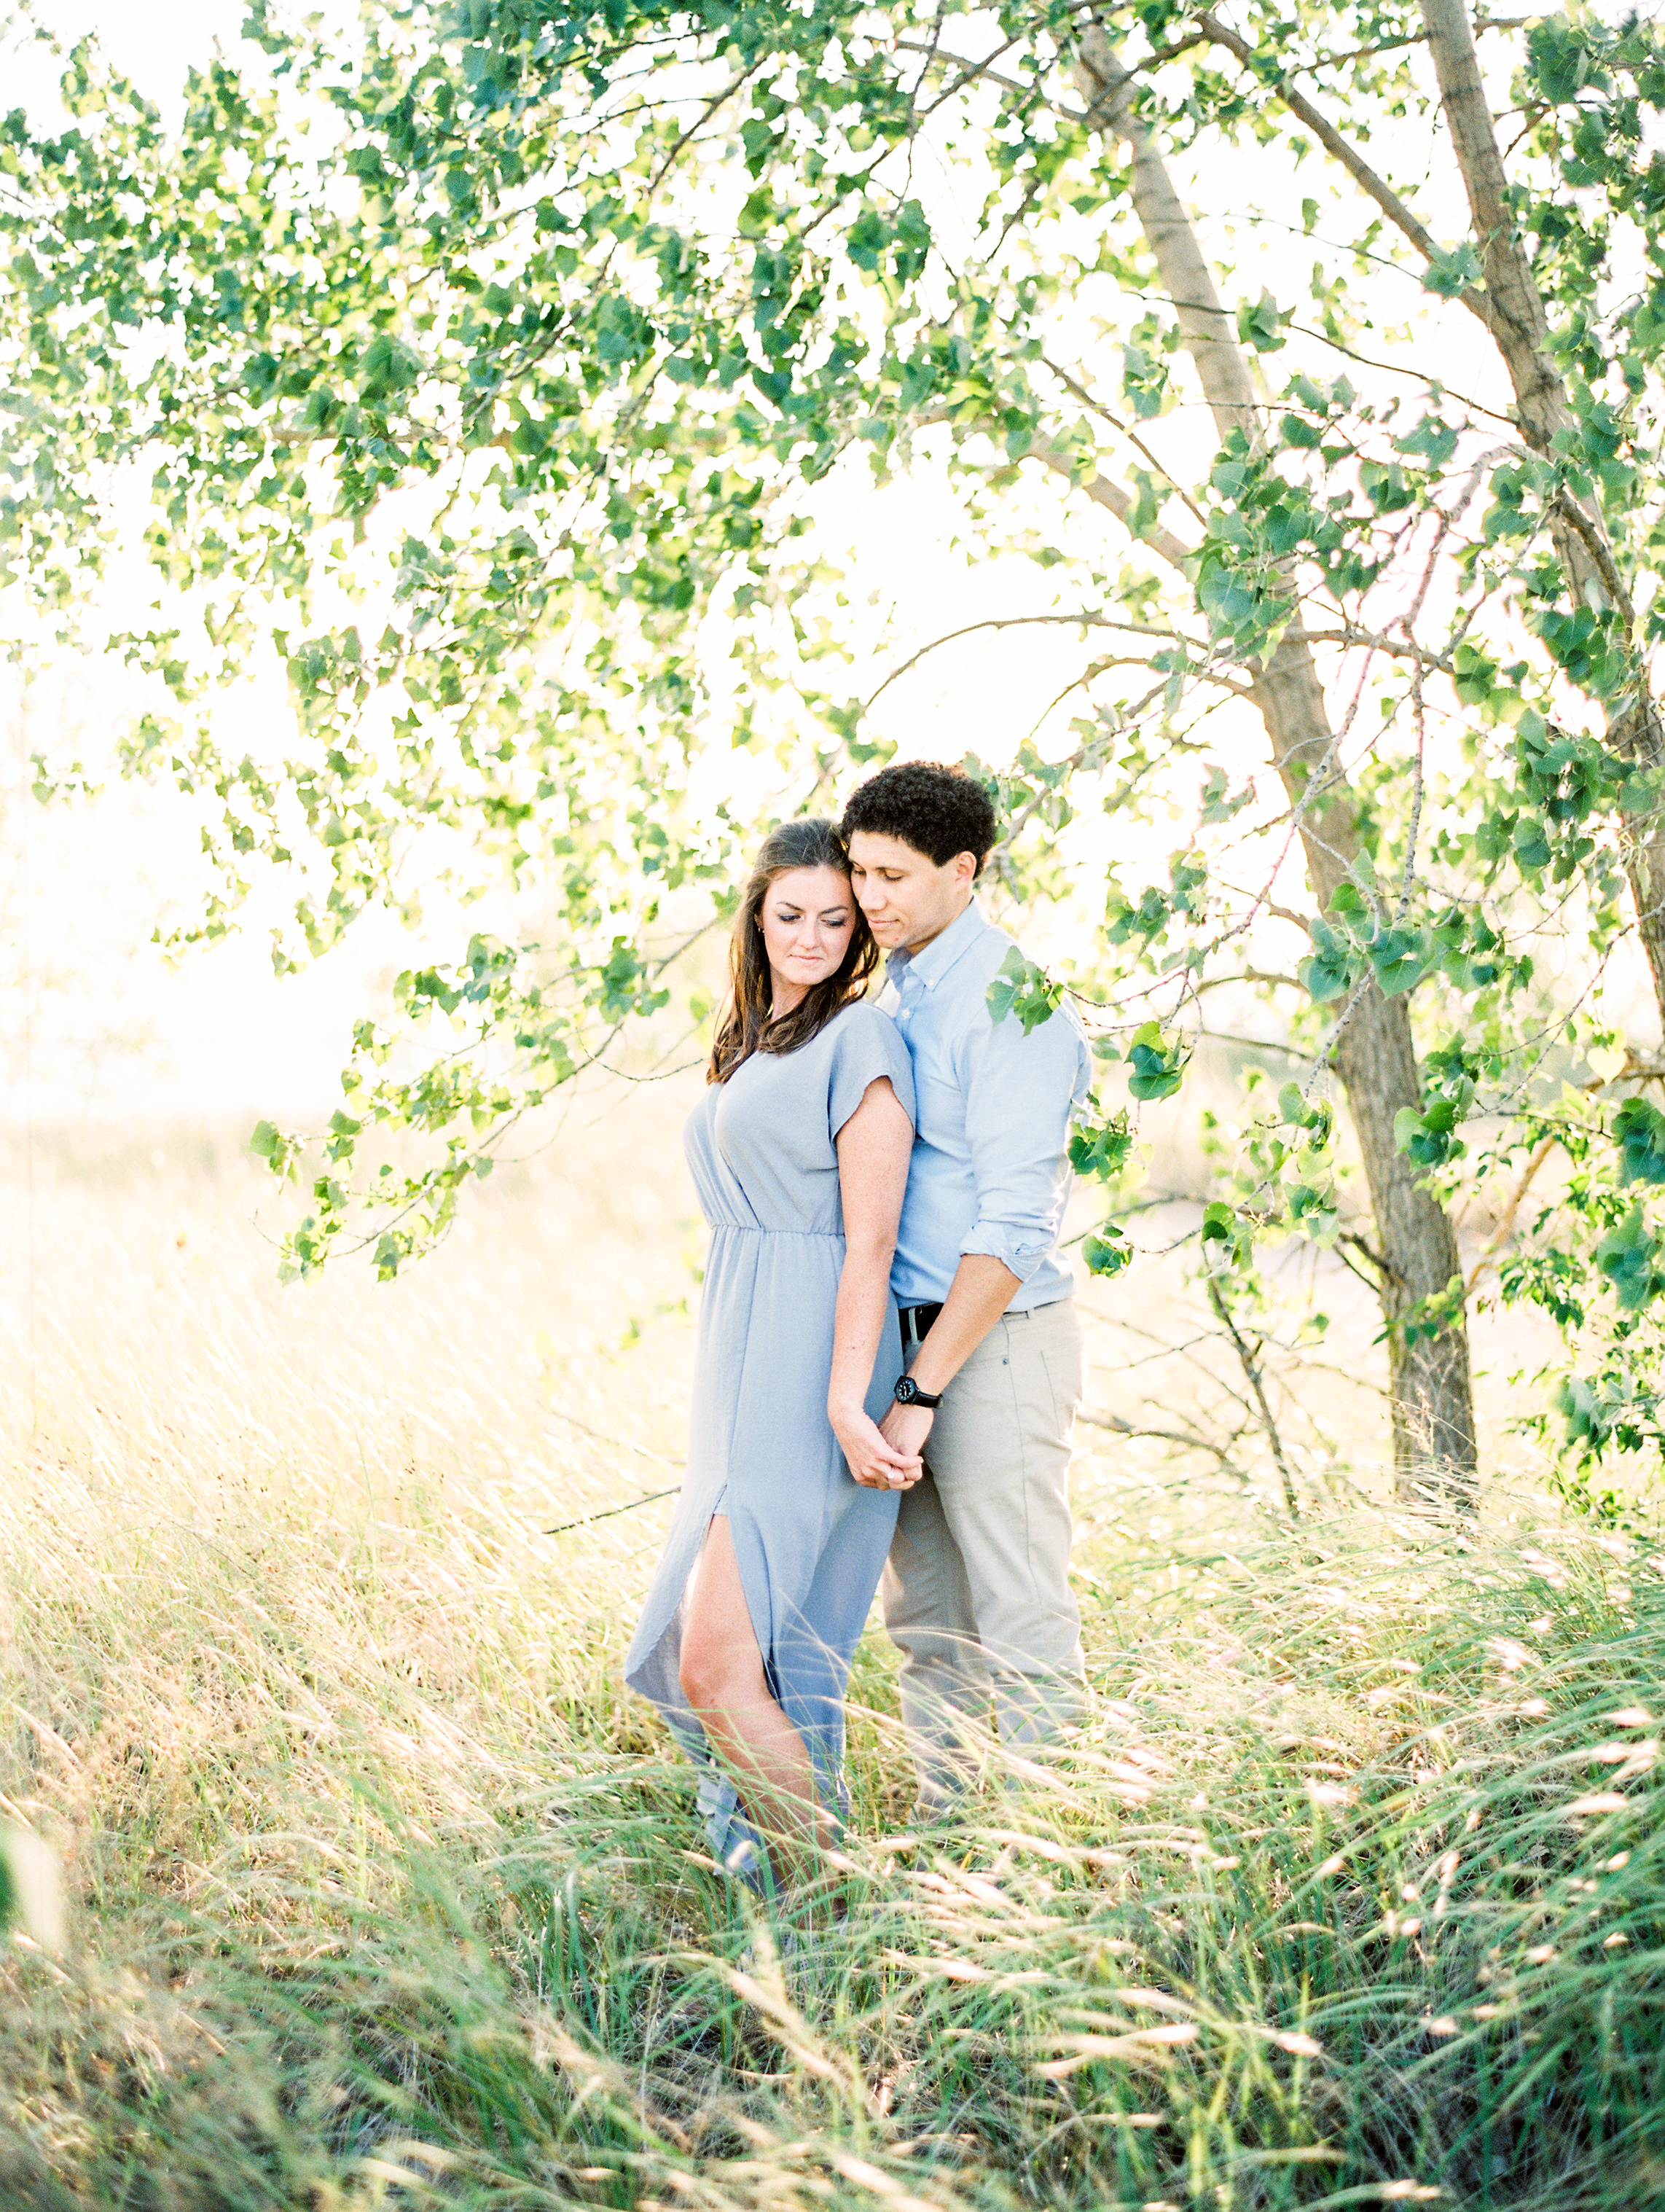 Lucie+Anthony+Engaged-27.jpg